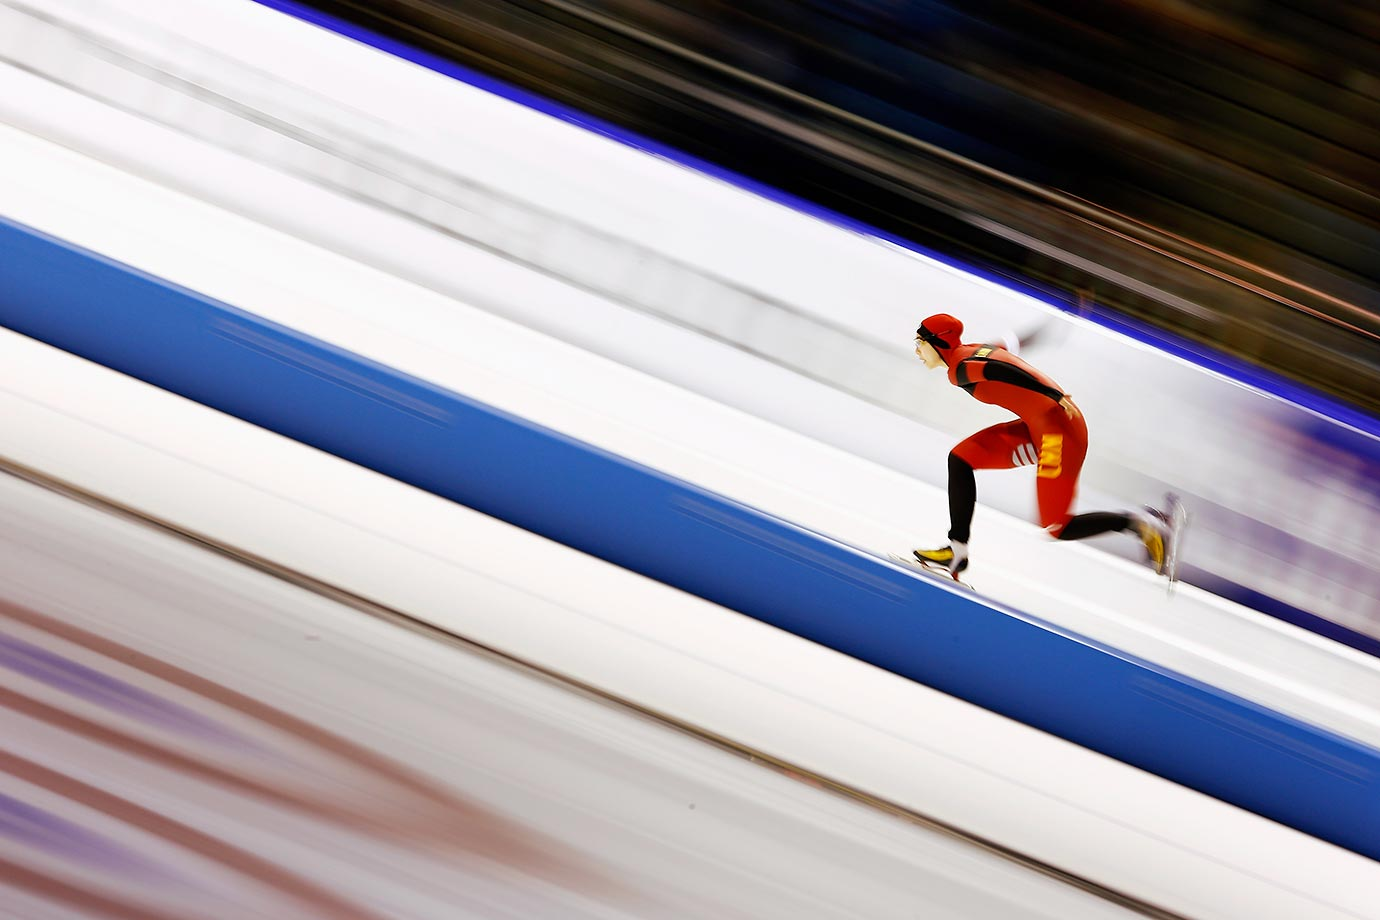 Qishi Li of China competes in the 1000m race during the ISU World Cup Speed Skating.